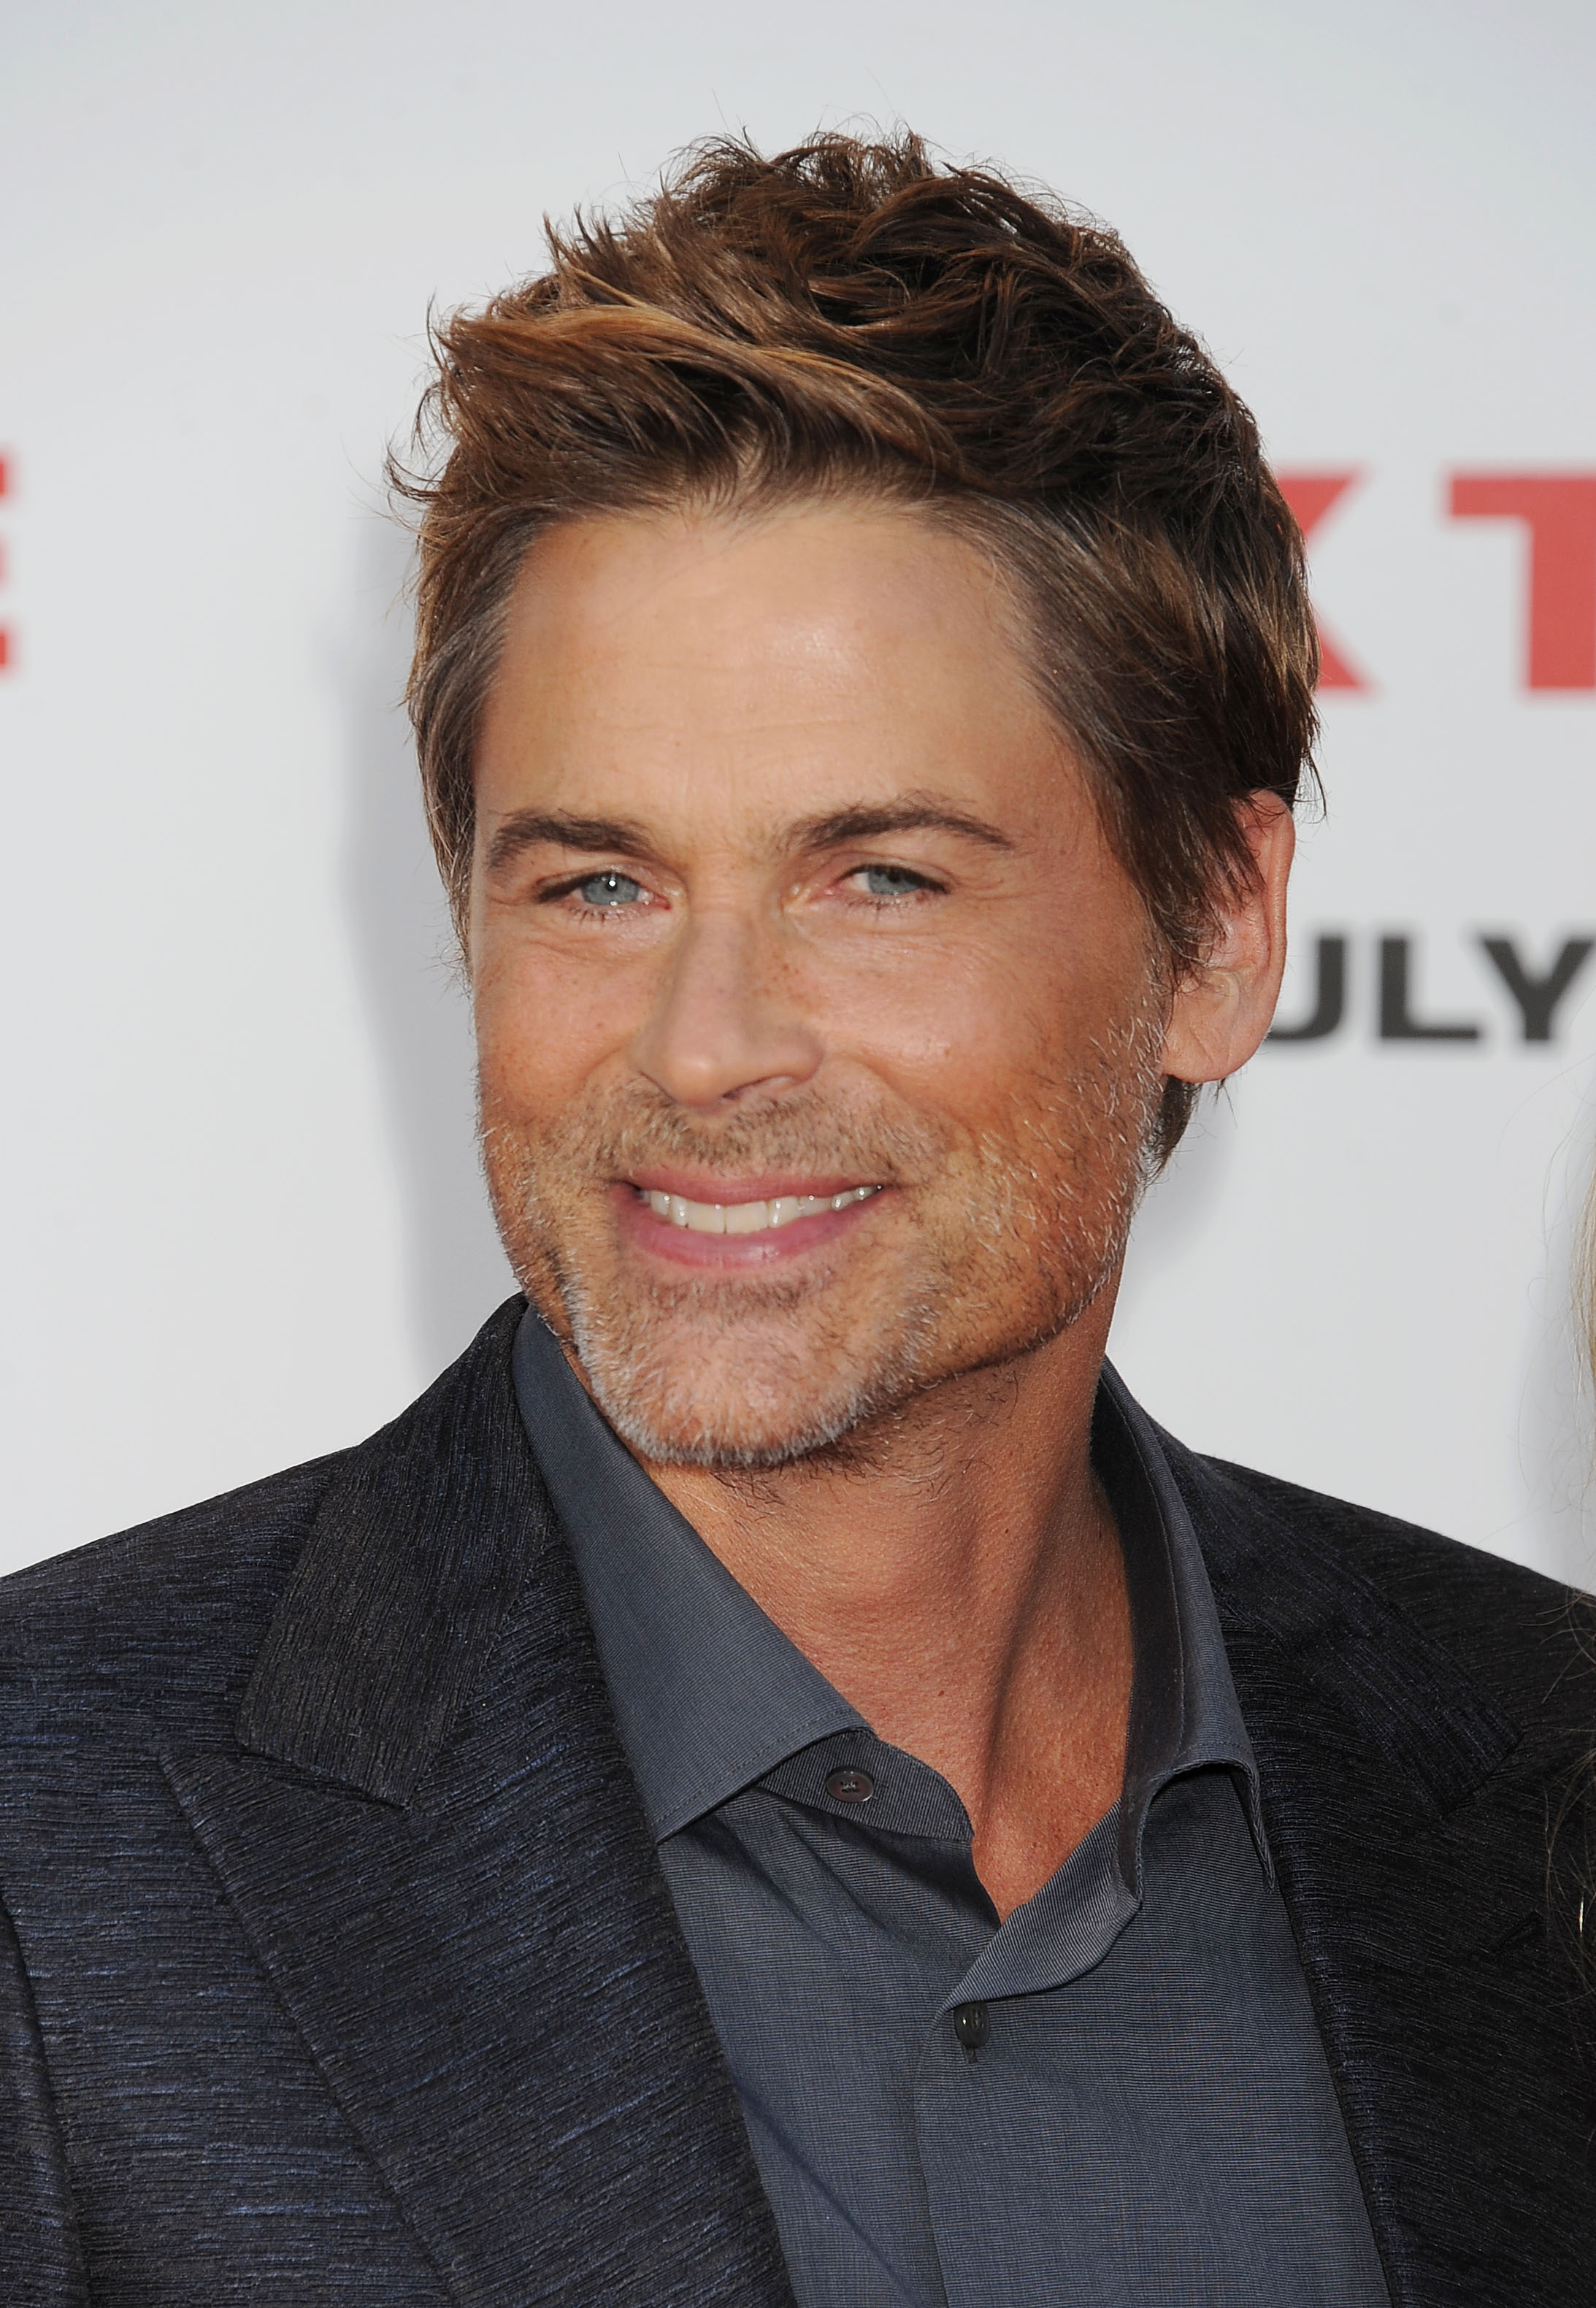 Actor Rob Lowe arrives at the  Sex Tape  Los Angeles Premiere at Regency Village Theatre on July 10, 2014 in Westwood, California.